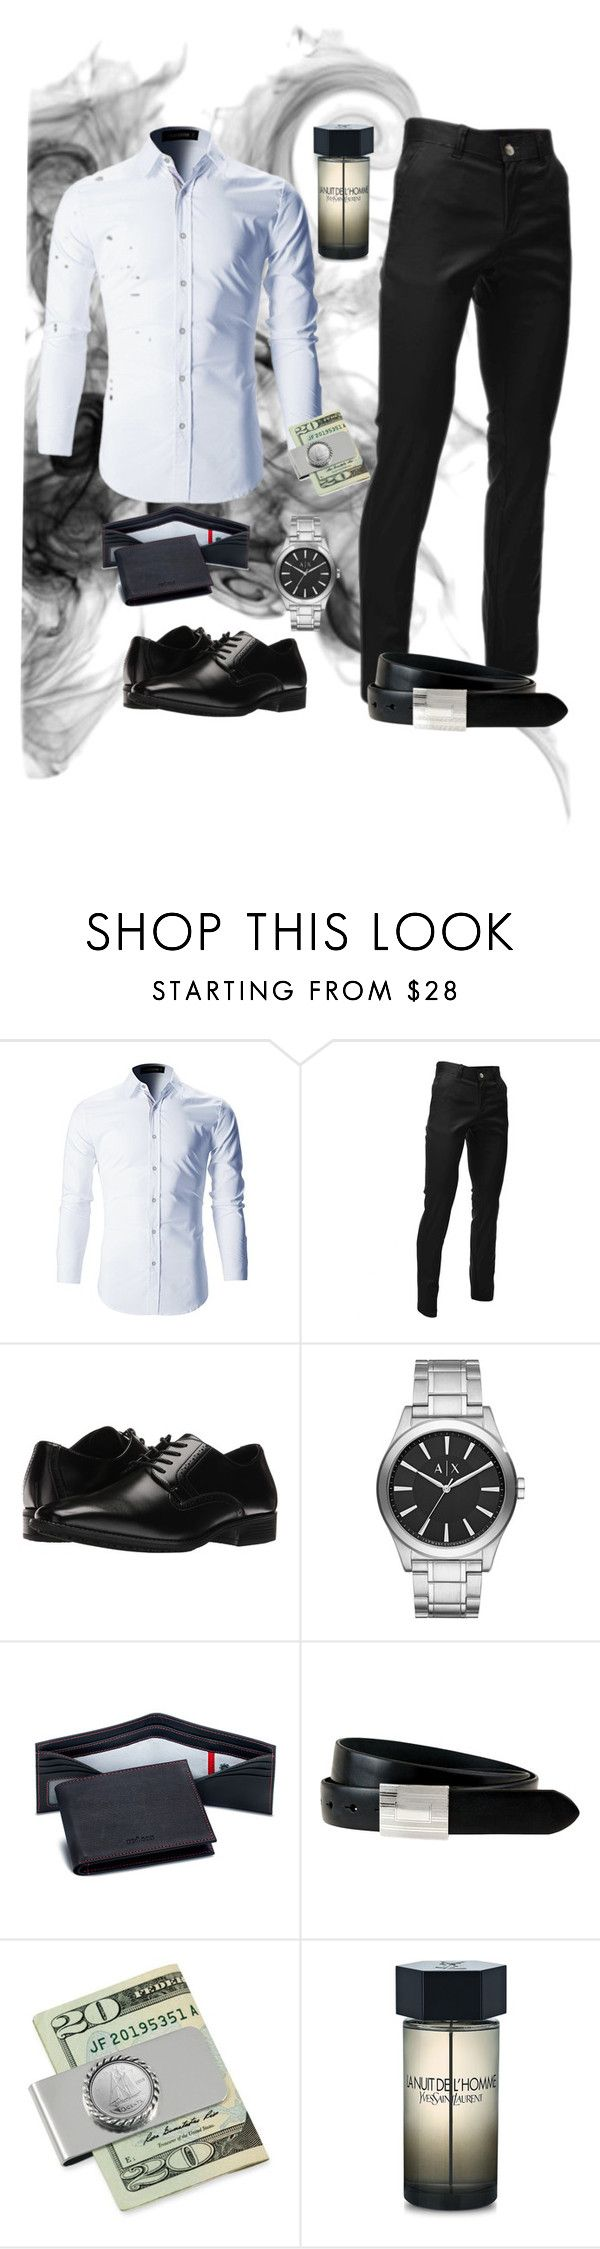 """""""men"""" by emilija-odory ❤ liked on Polyvore featuring Stacy Adams, Armani Exchange, Tokens & Icons, The British Belt Company, American Coin Treasures, Yves Saint Laurent, men's fashion and menswear"""